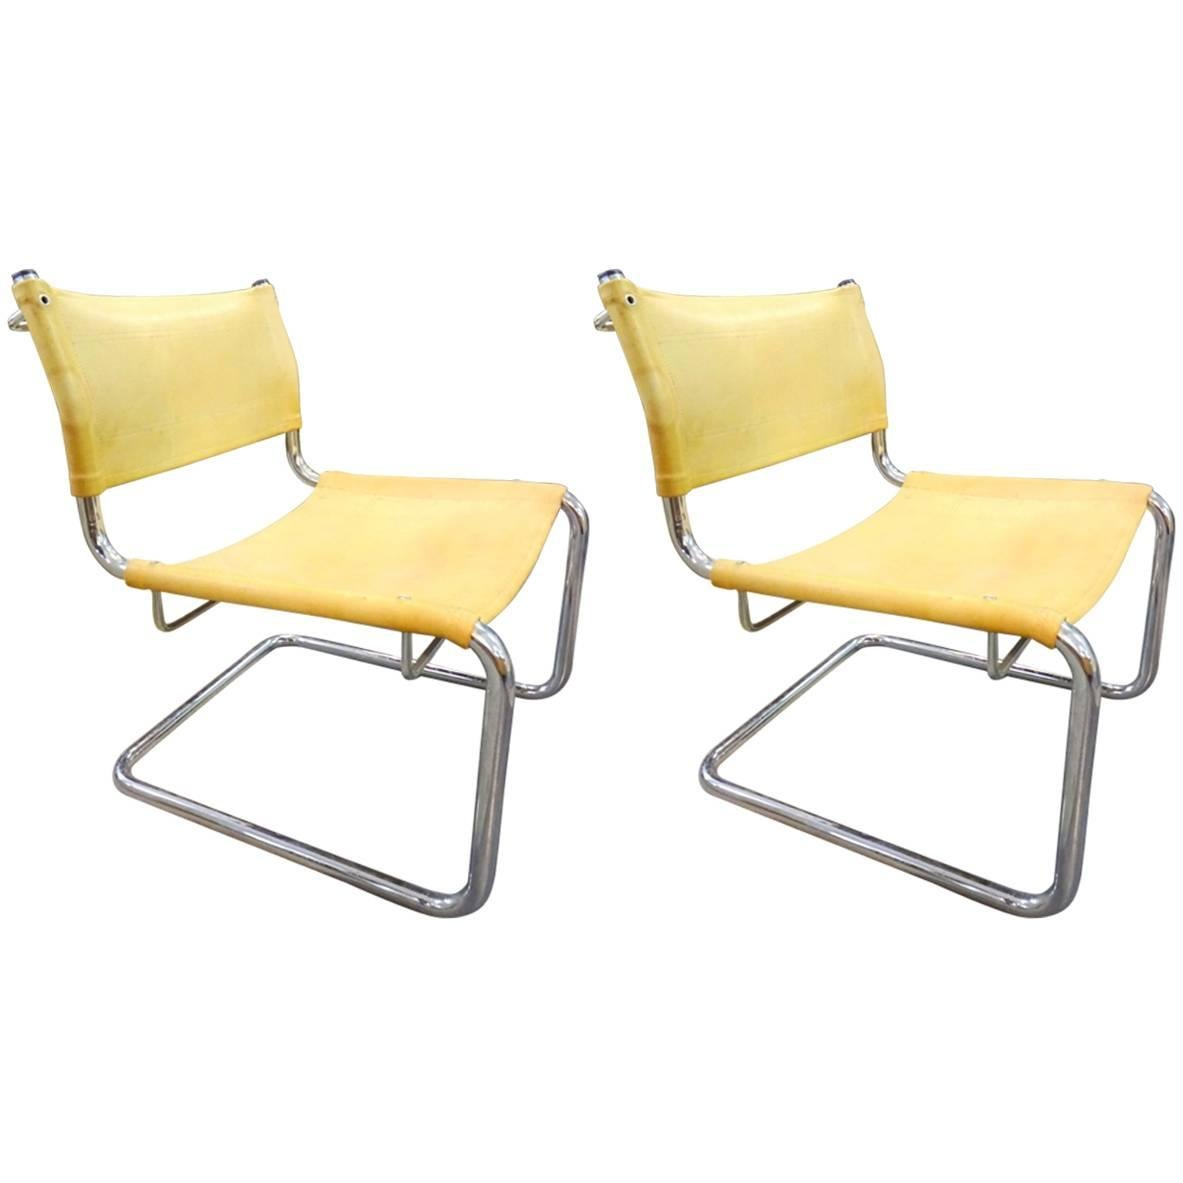 Pair of Leather Tubular Chairs